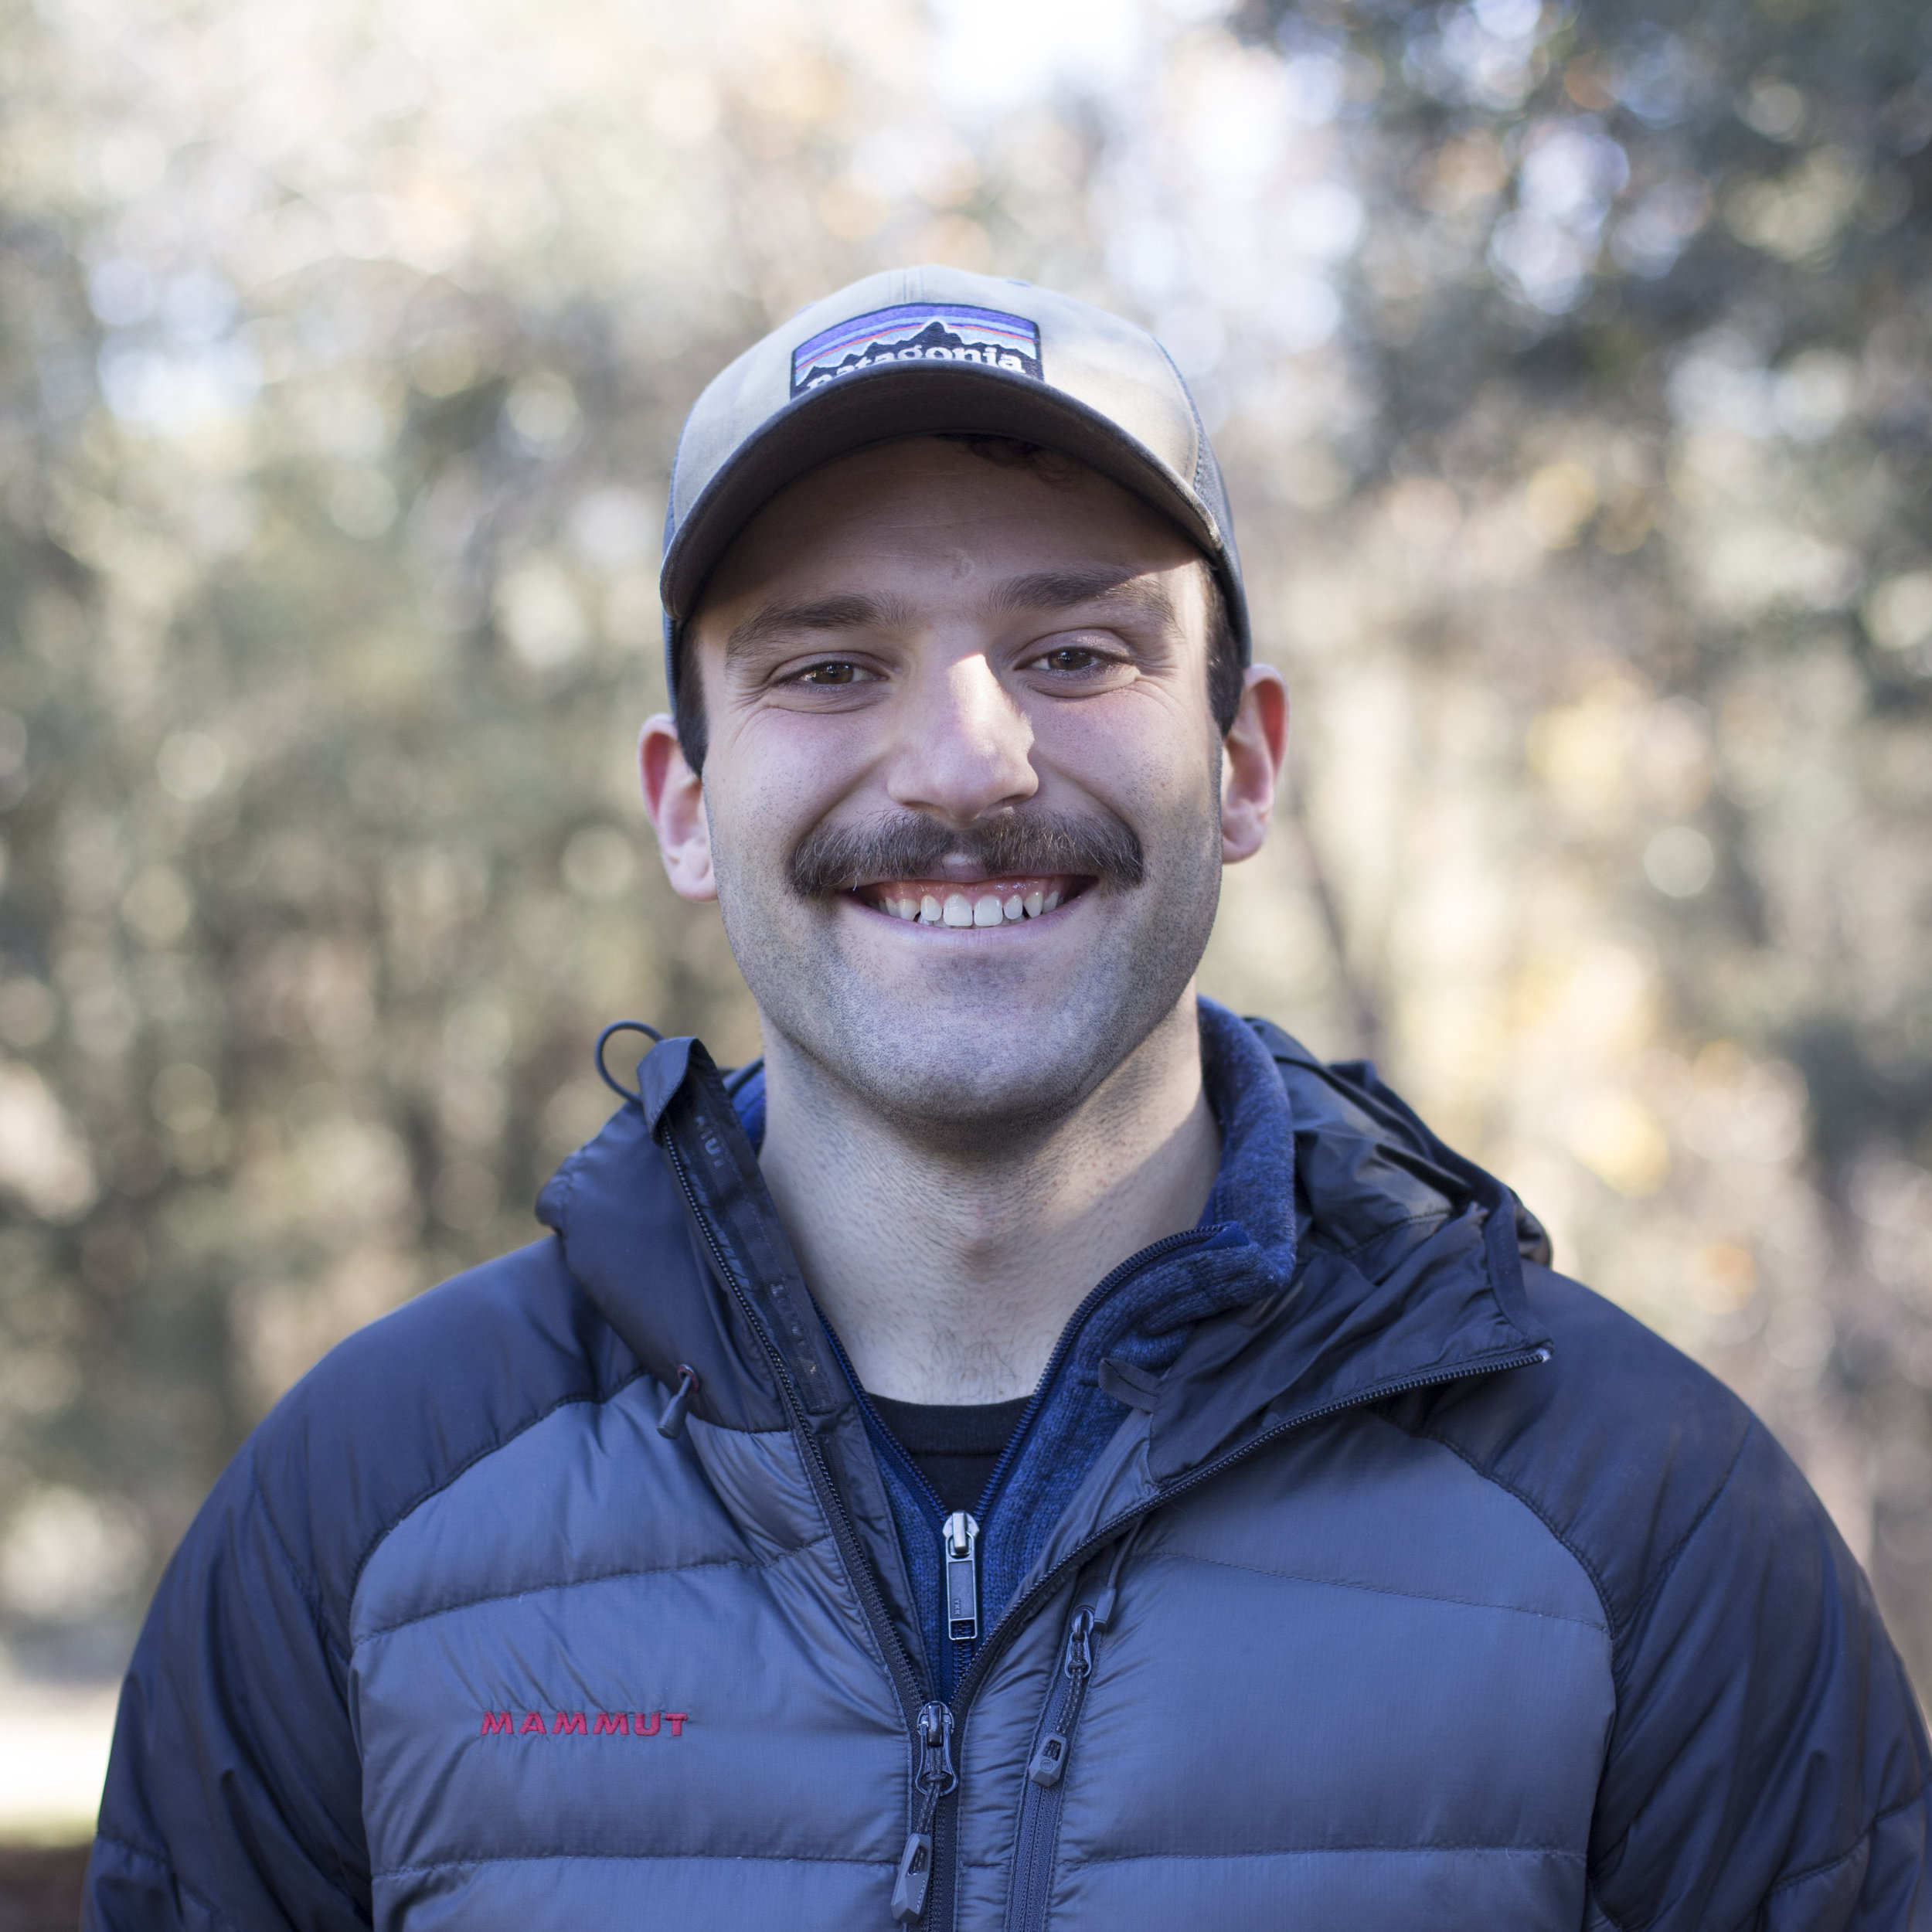 Josh Anderson - Josh Andersonis on staff here at YWAM Yosemite, where he also did his DTS, with his wife Sabrina. Not only is he passionate about discipleship, sustainability and community development... but he's also a bearded (or sometimes mustached) outdoorsman and an avid rock climber.